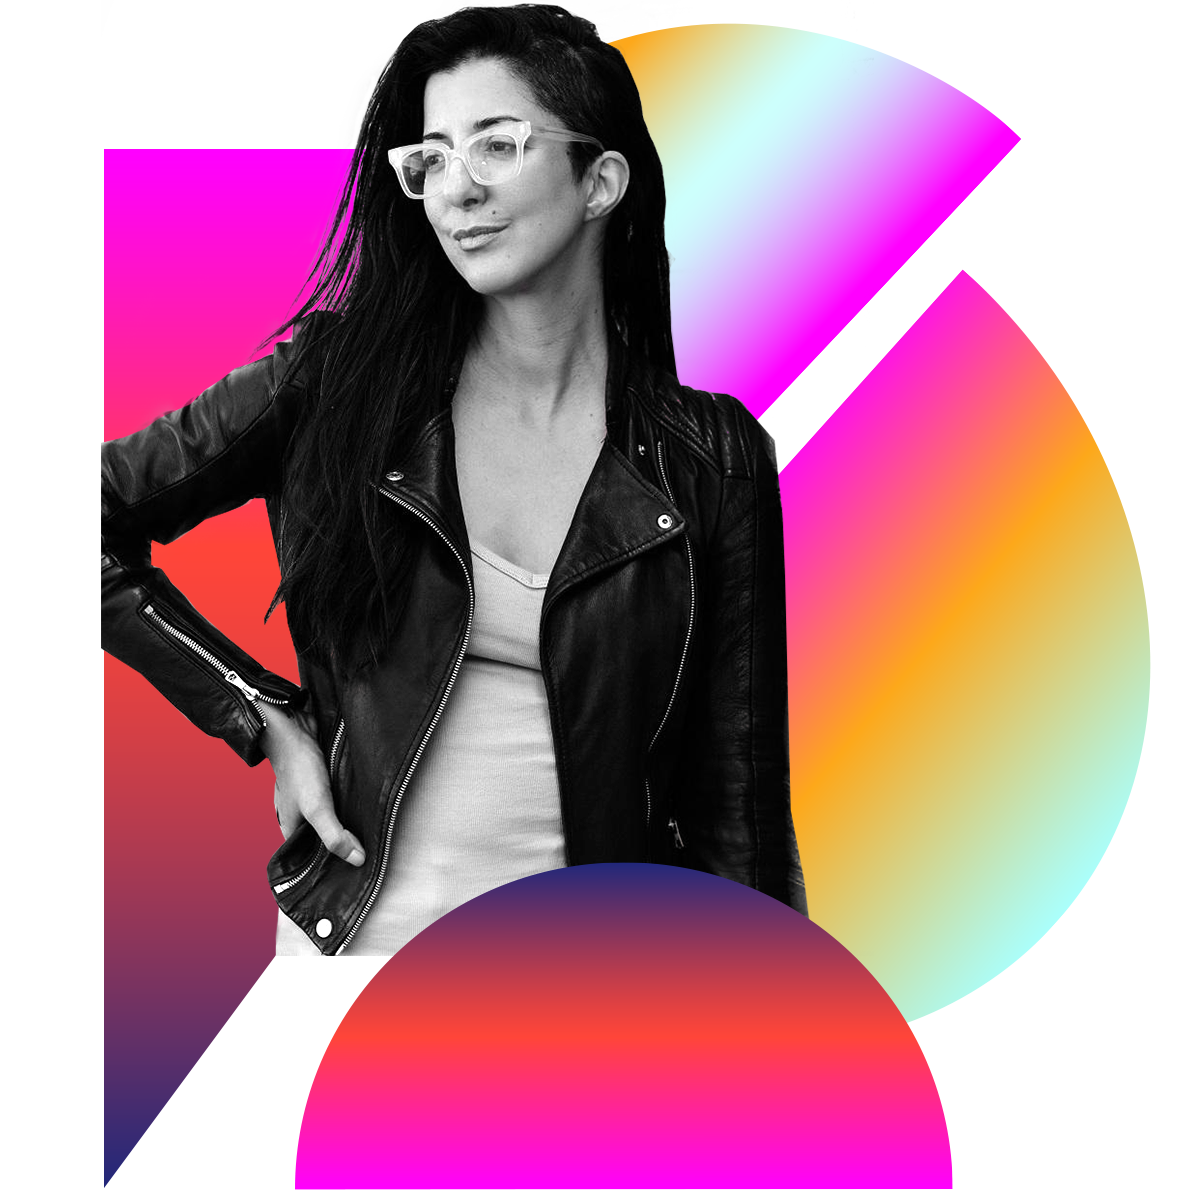 Photo illustration of Porochista Khakpour in black and white surrounded by colored gradients